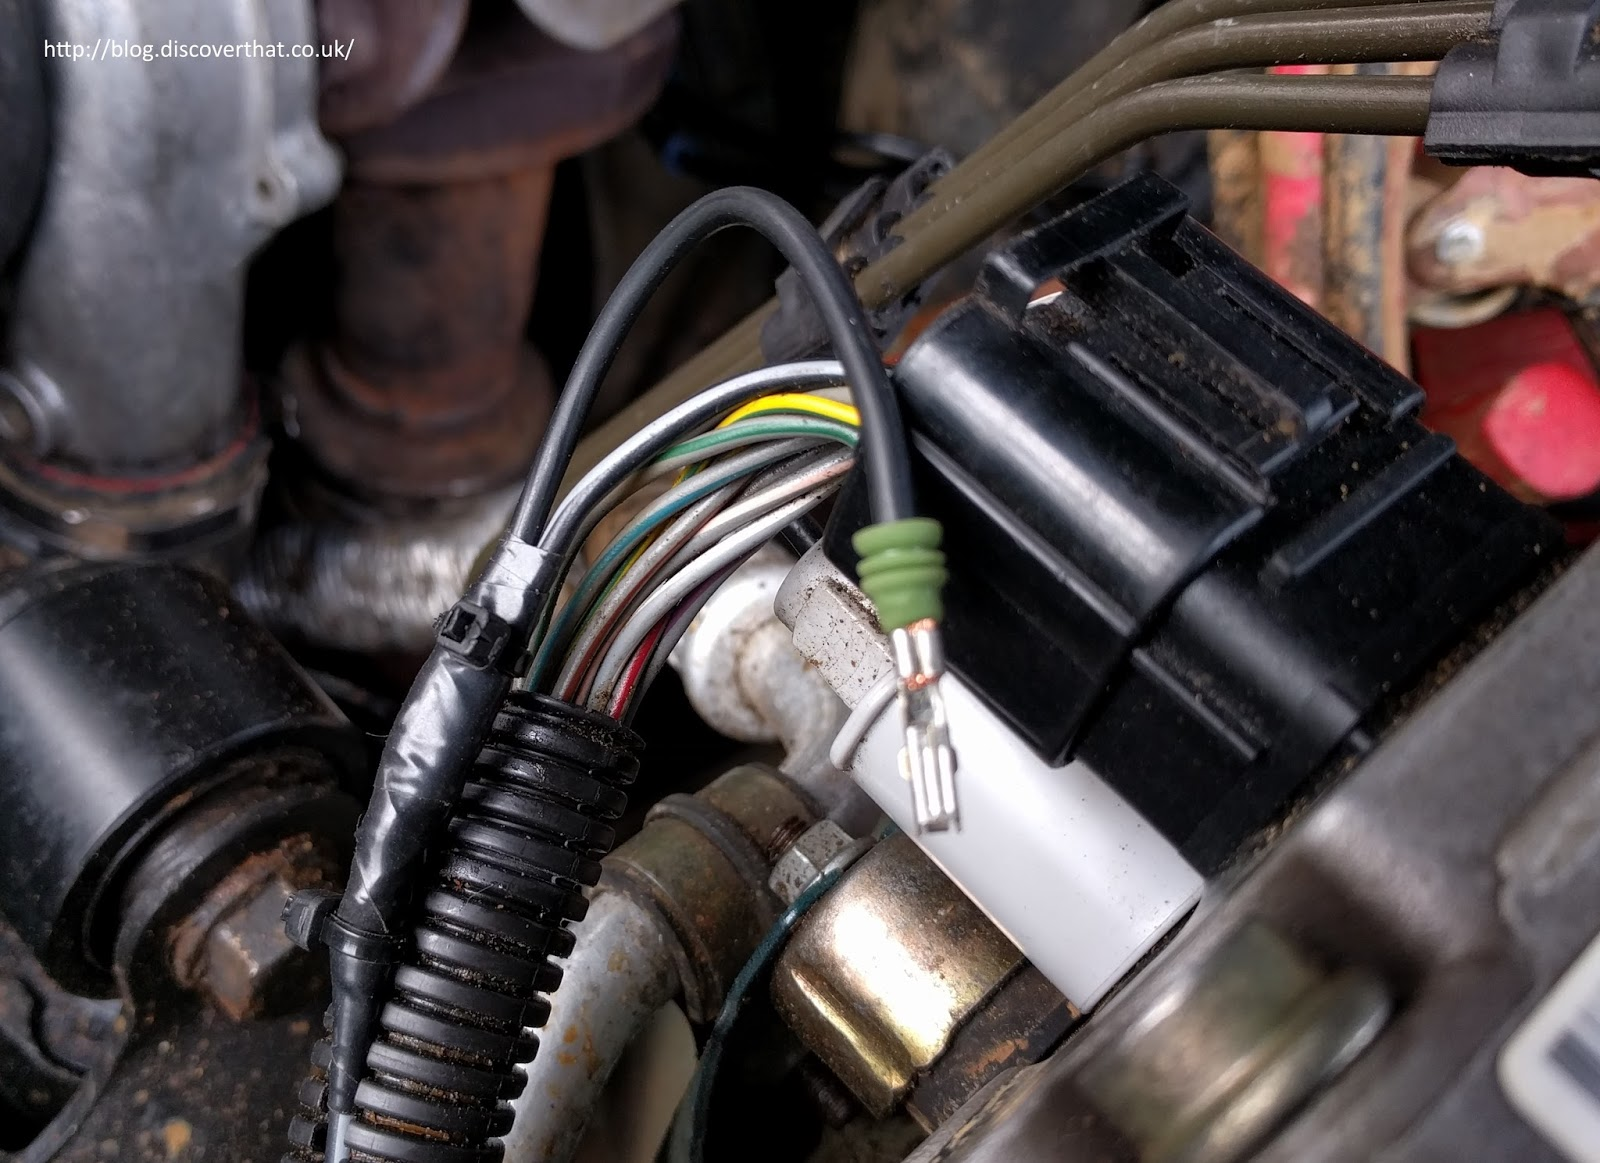 Discoverthat Discovery 2 Abs Repair Land Rover Wiring Diagram I Taped It Up Securely As Also Did With The Now Redundant Loose End On Modulator Switch Lead